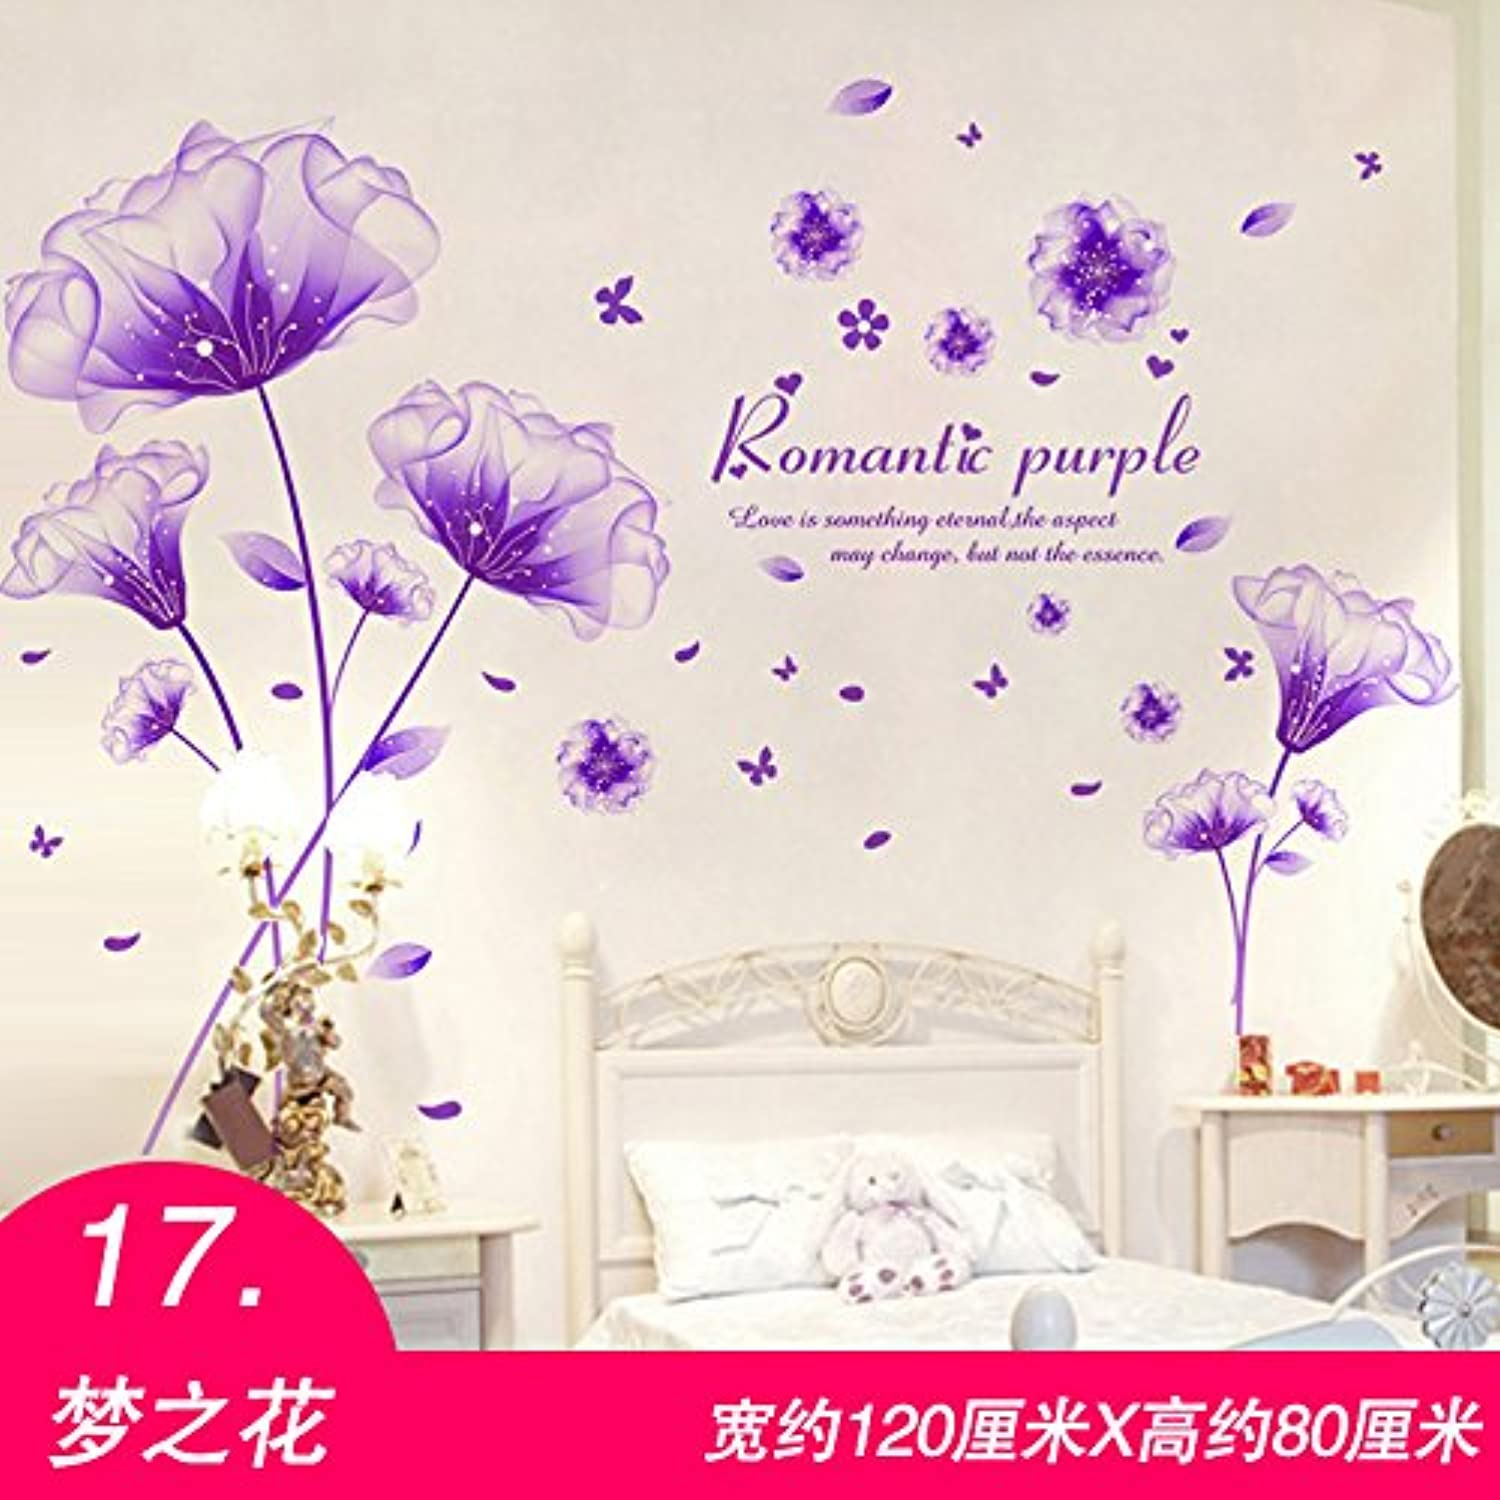 Znzbzt 3D Wallpaper self Adhesive Bedroom Wall Decoration Wall Sticker Wall Posters, Dream Flower